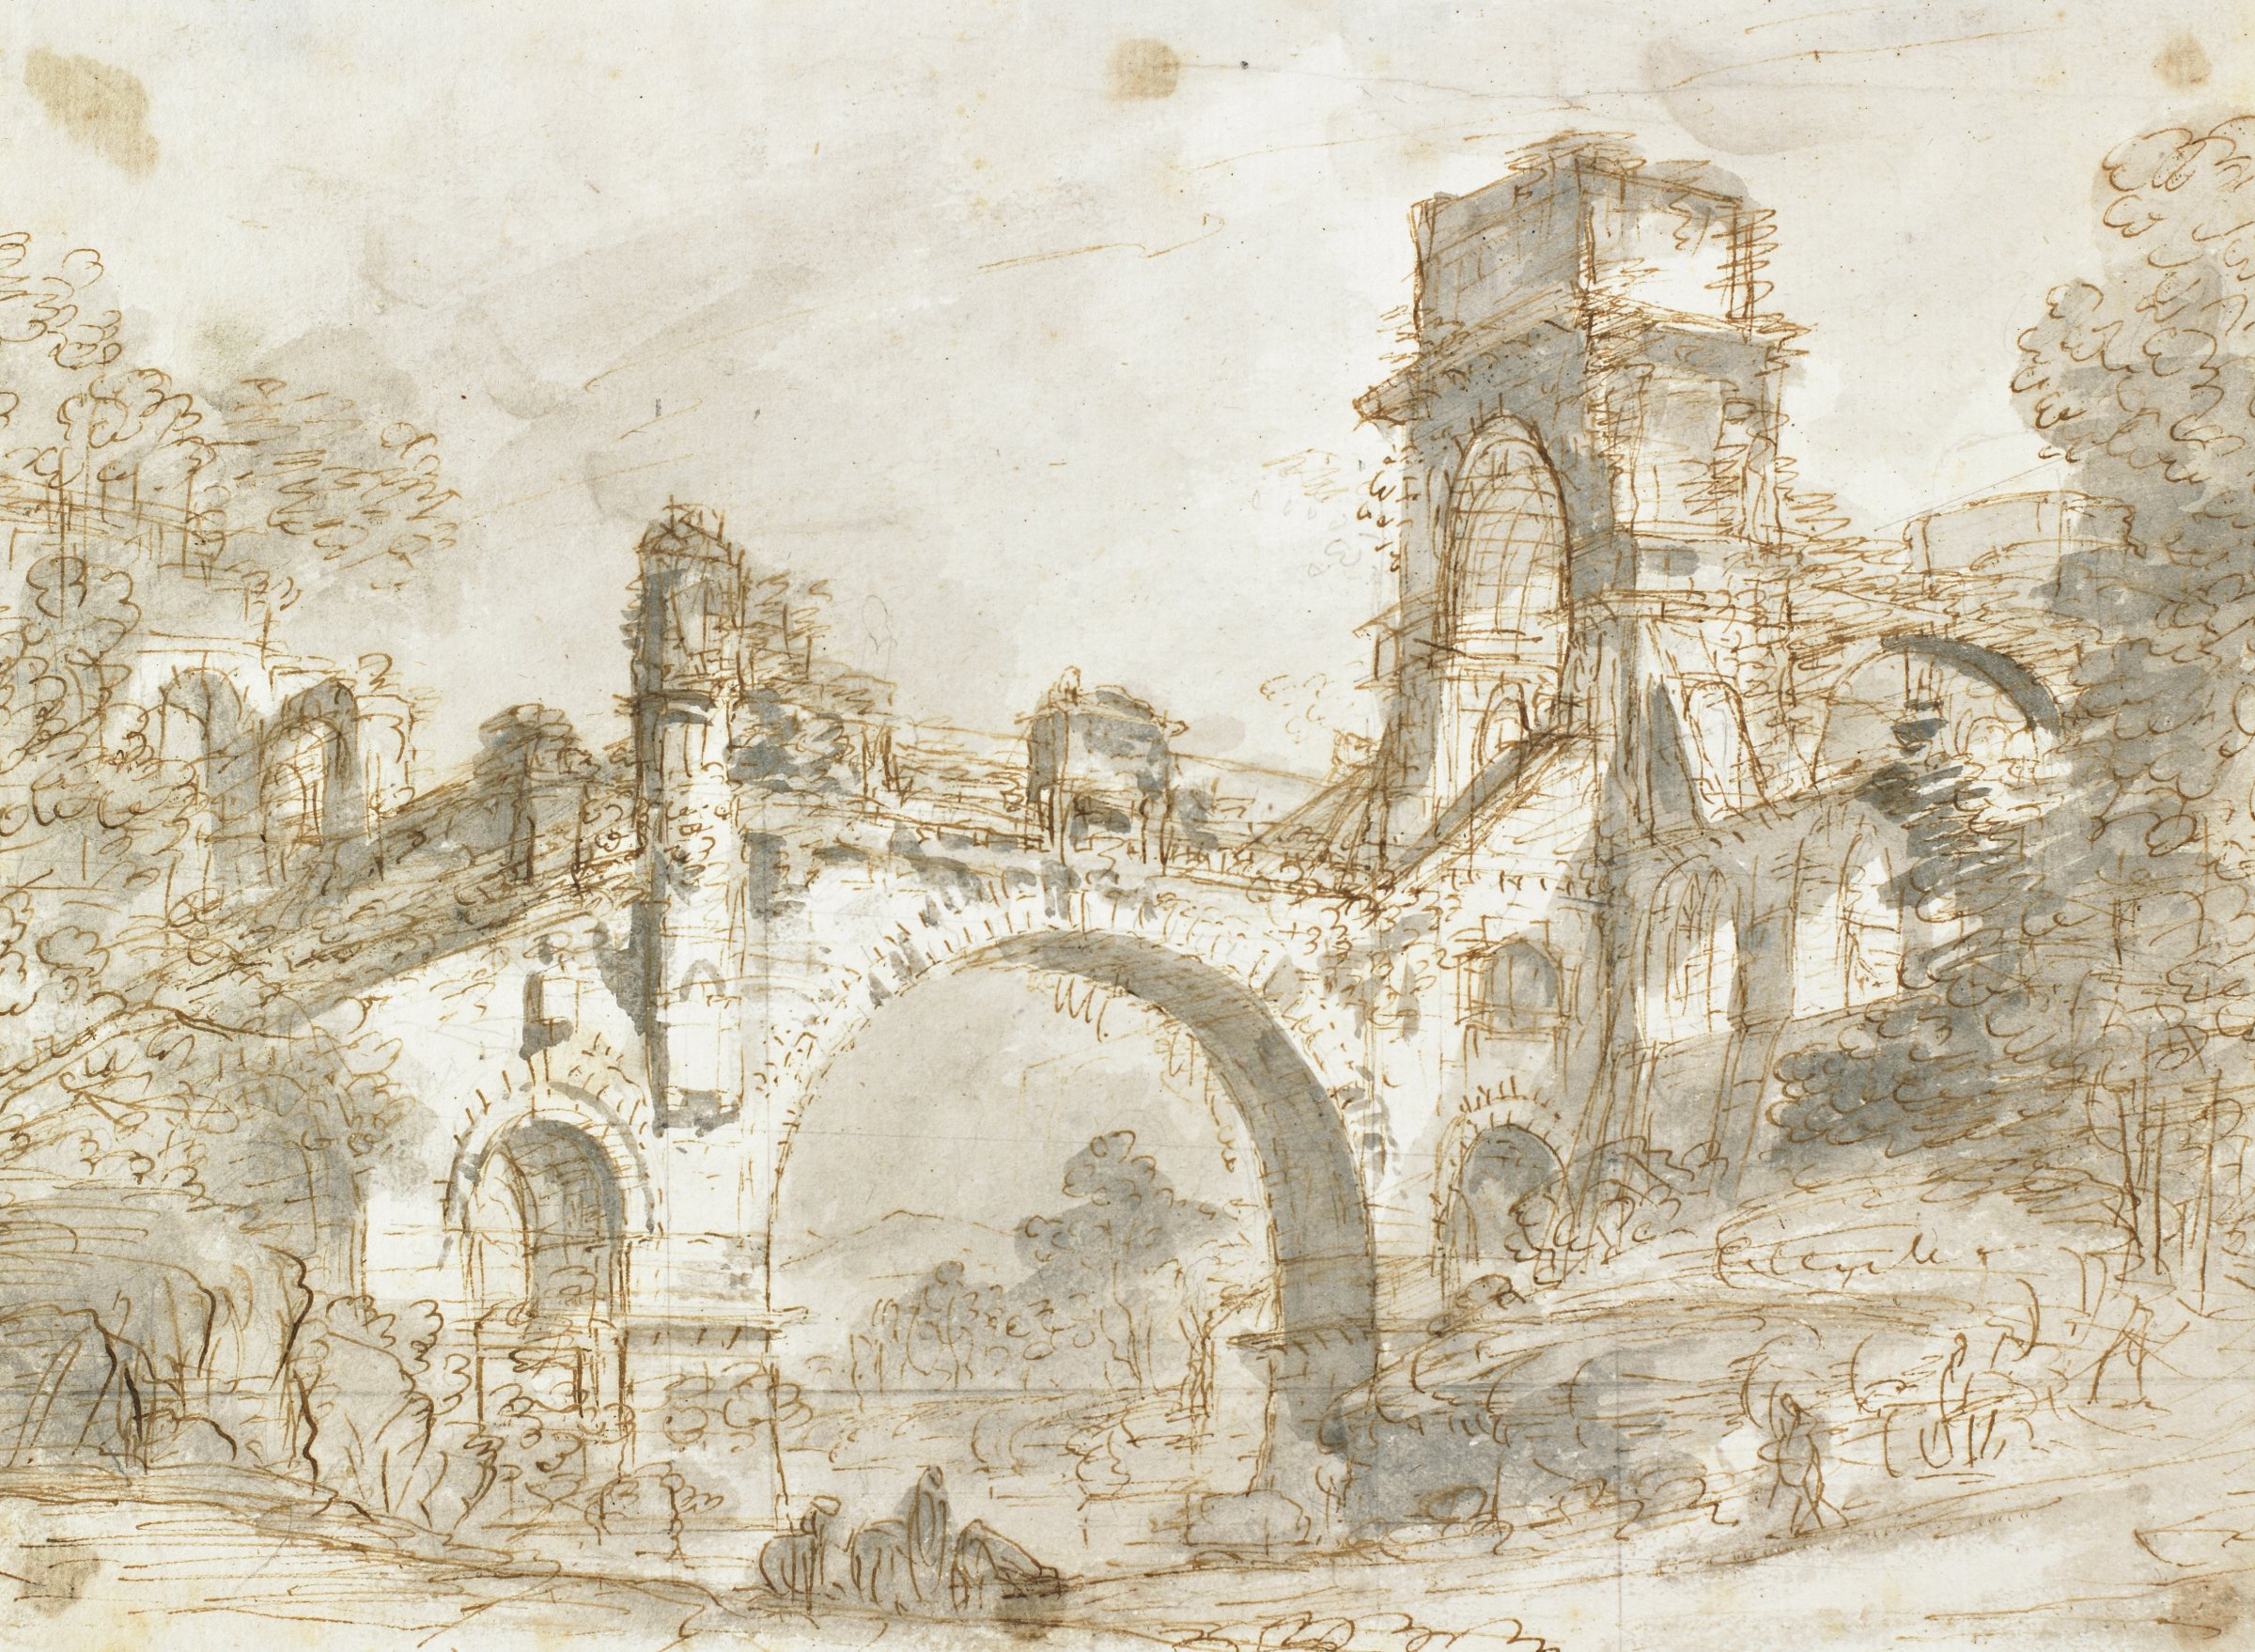 Drawing of a bridge with a triumphal arch and turret, leading into a town. Foliage on both sides of bridge, with quickly sketched figures in foreground.